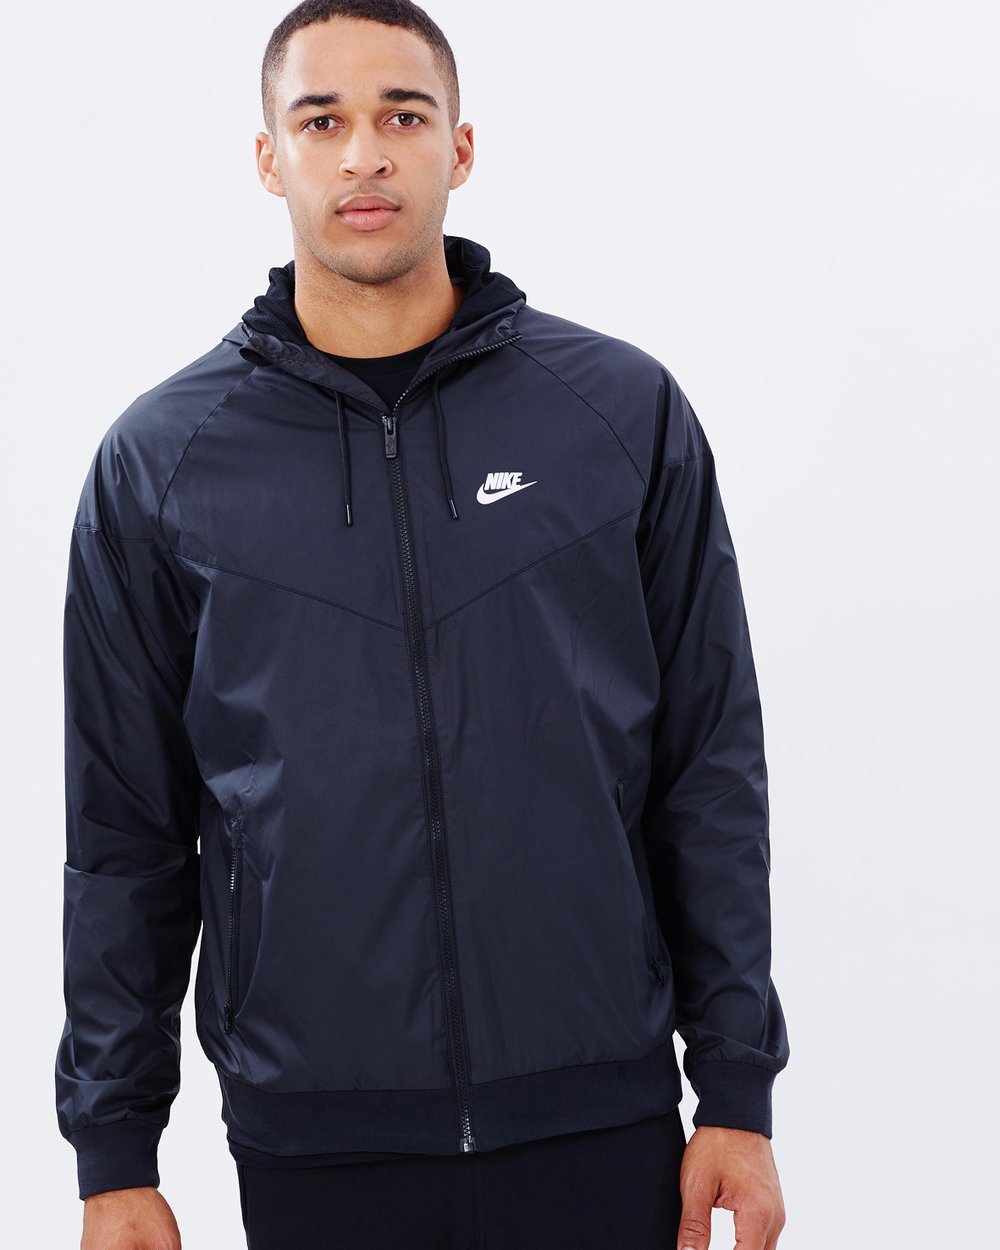 82a5deb6027b Windrunner Jacket by Nike Online